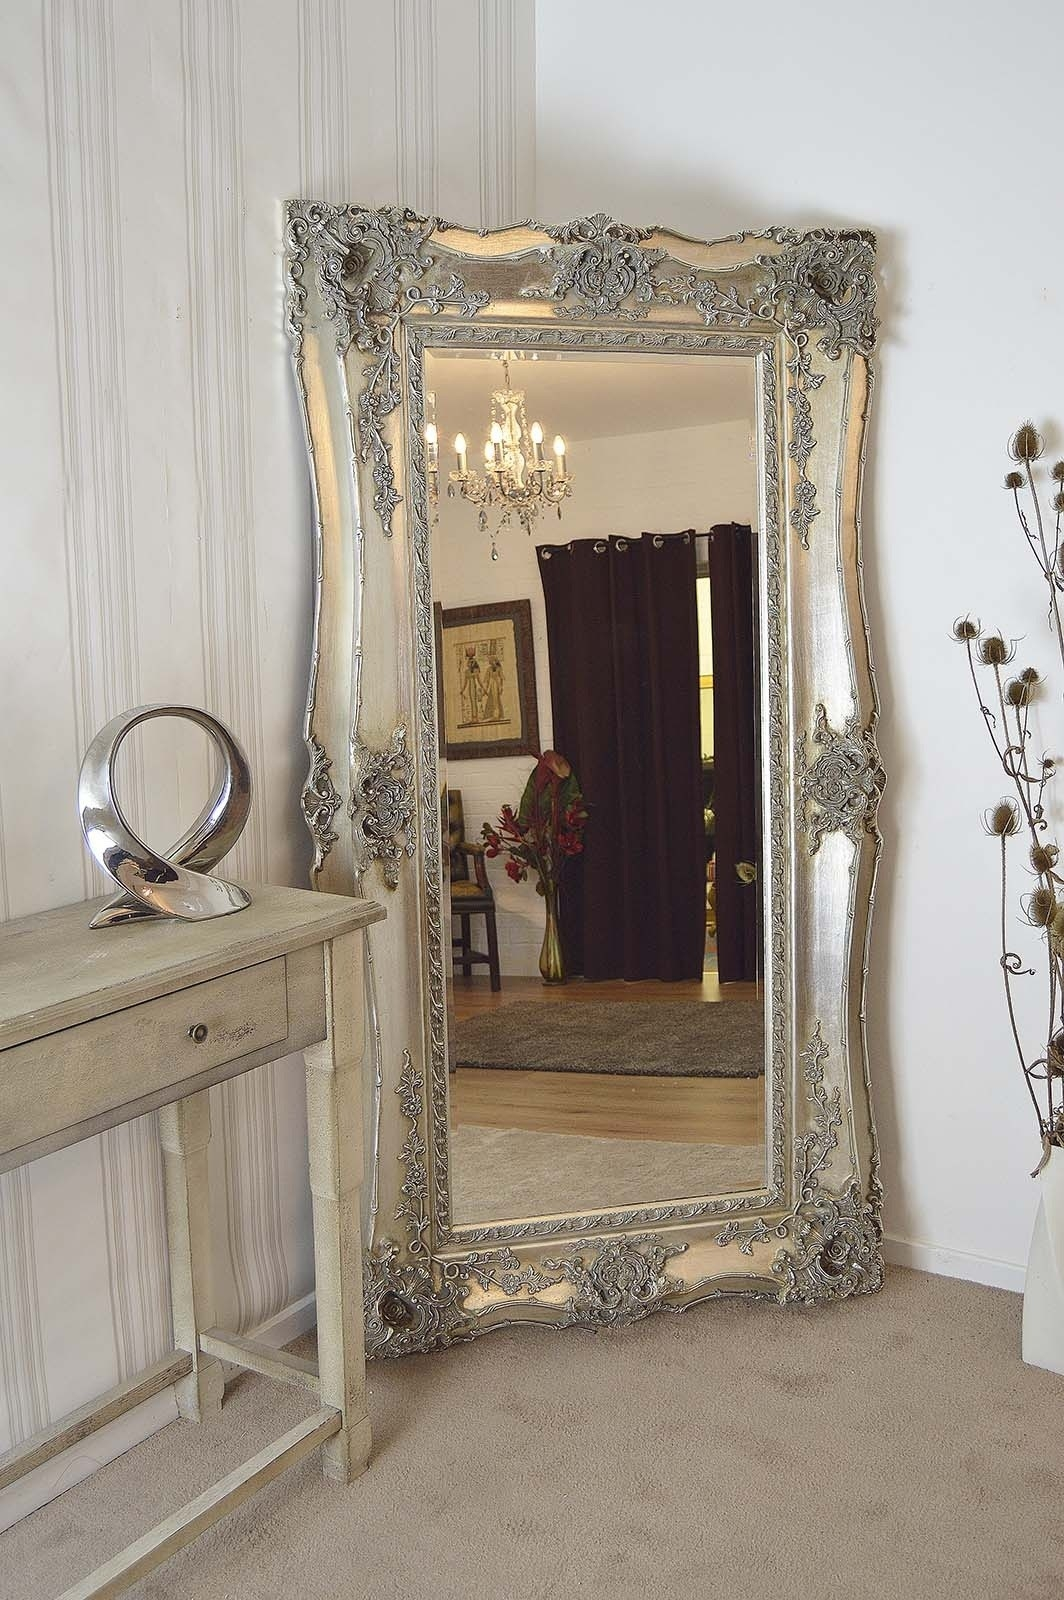 15 Ornate Full Length Wall Mirror Mirror Ideas